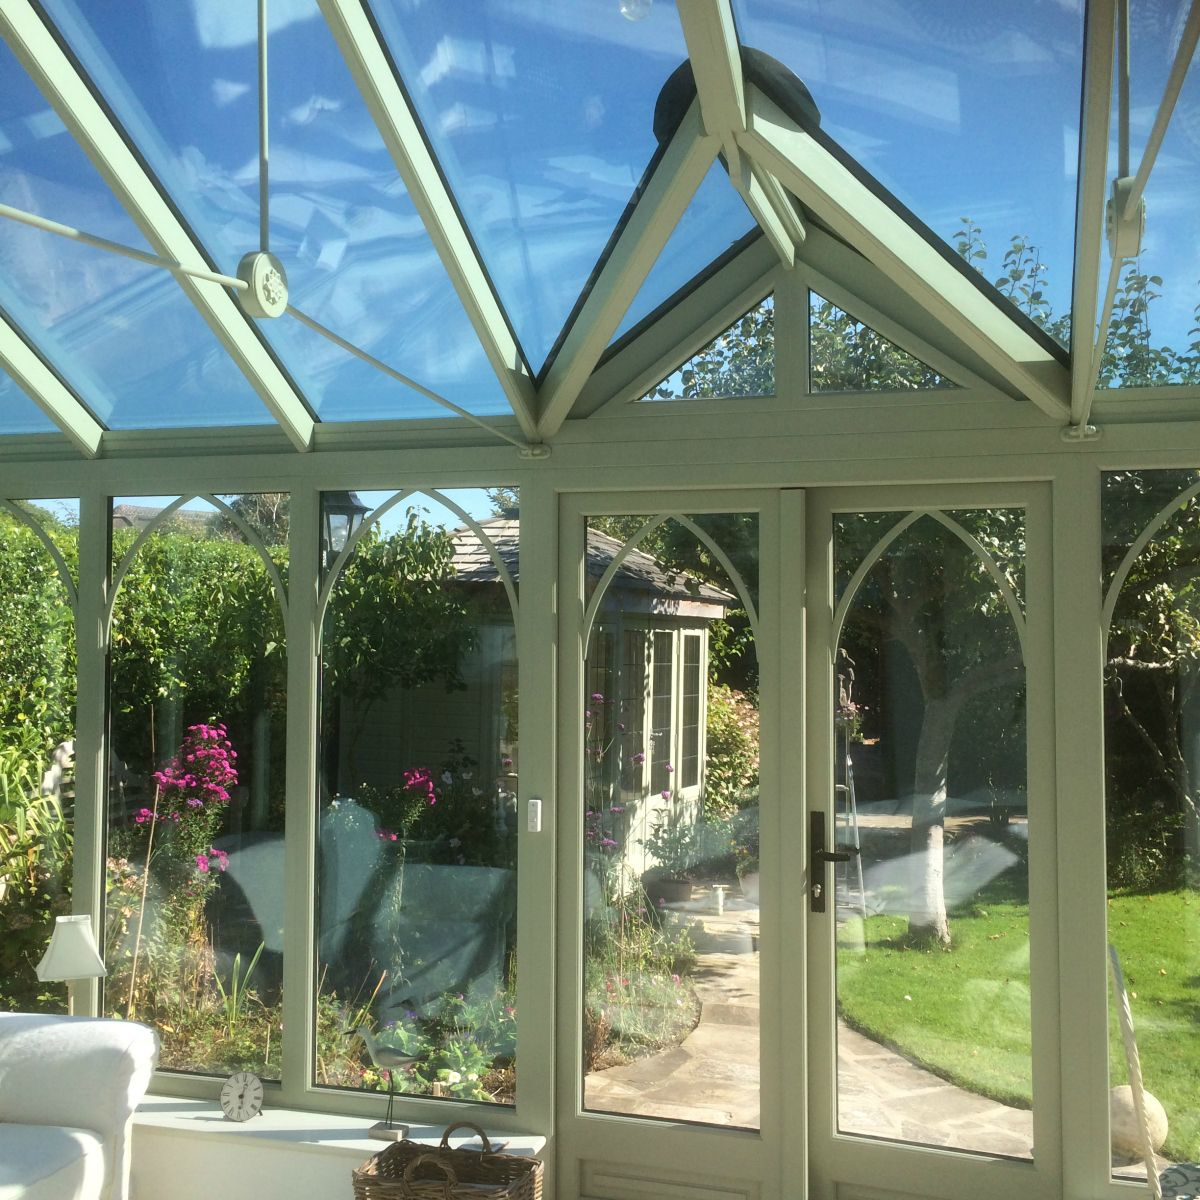 New Conservatory Painted In Heritage Green With Self Cleaning Soft Coated Aqua Blue High Performance Solar Reflectiv Conservatory Heritage Paint West Sussex